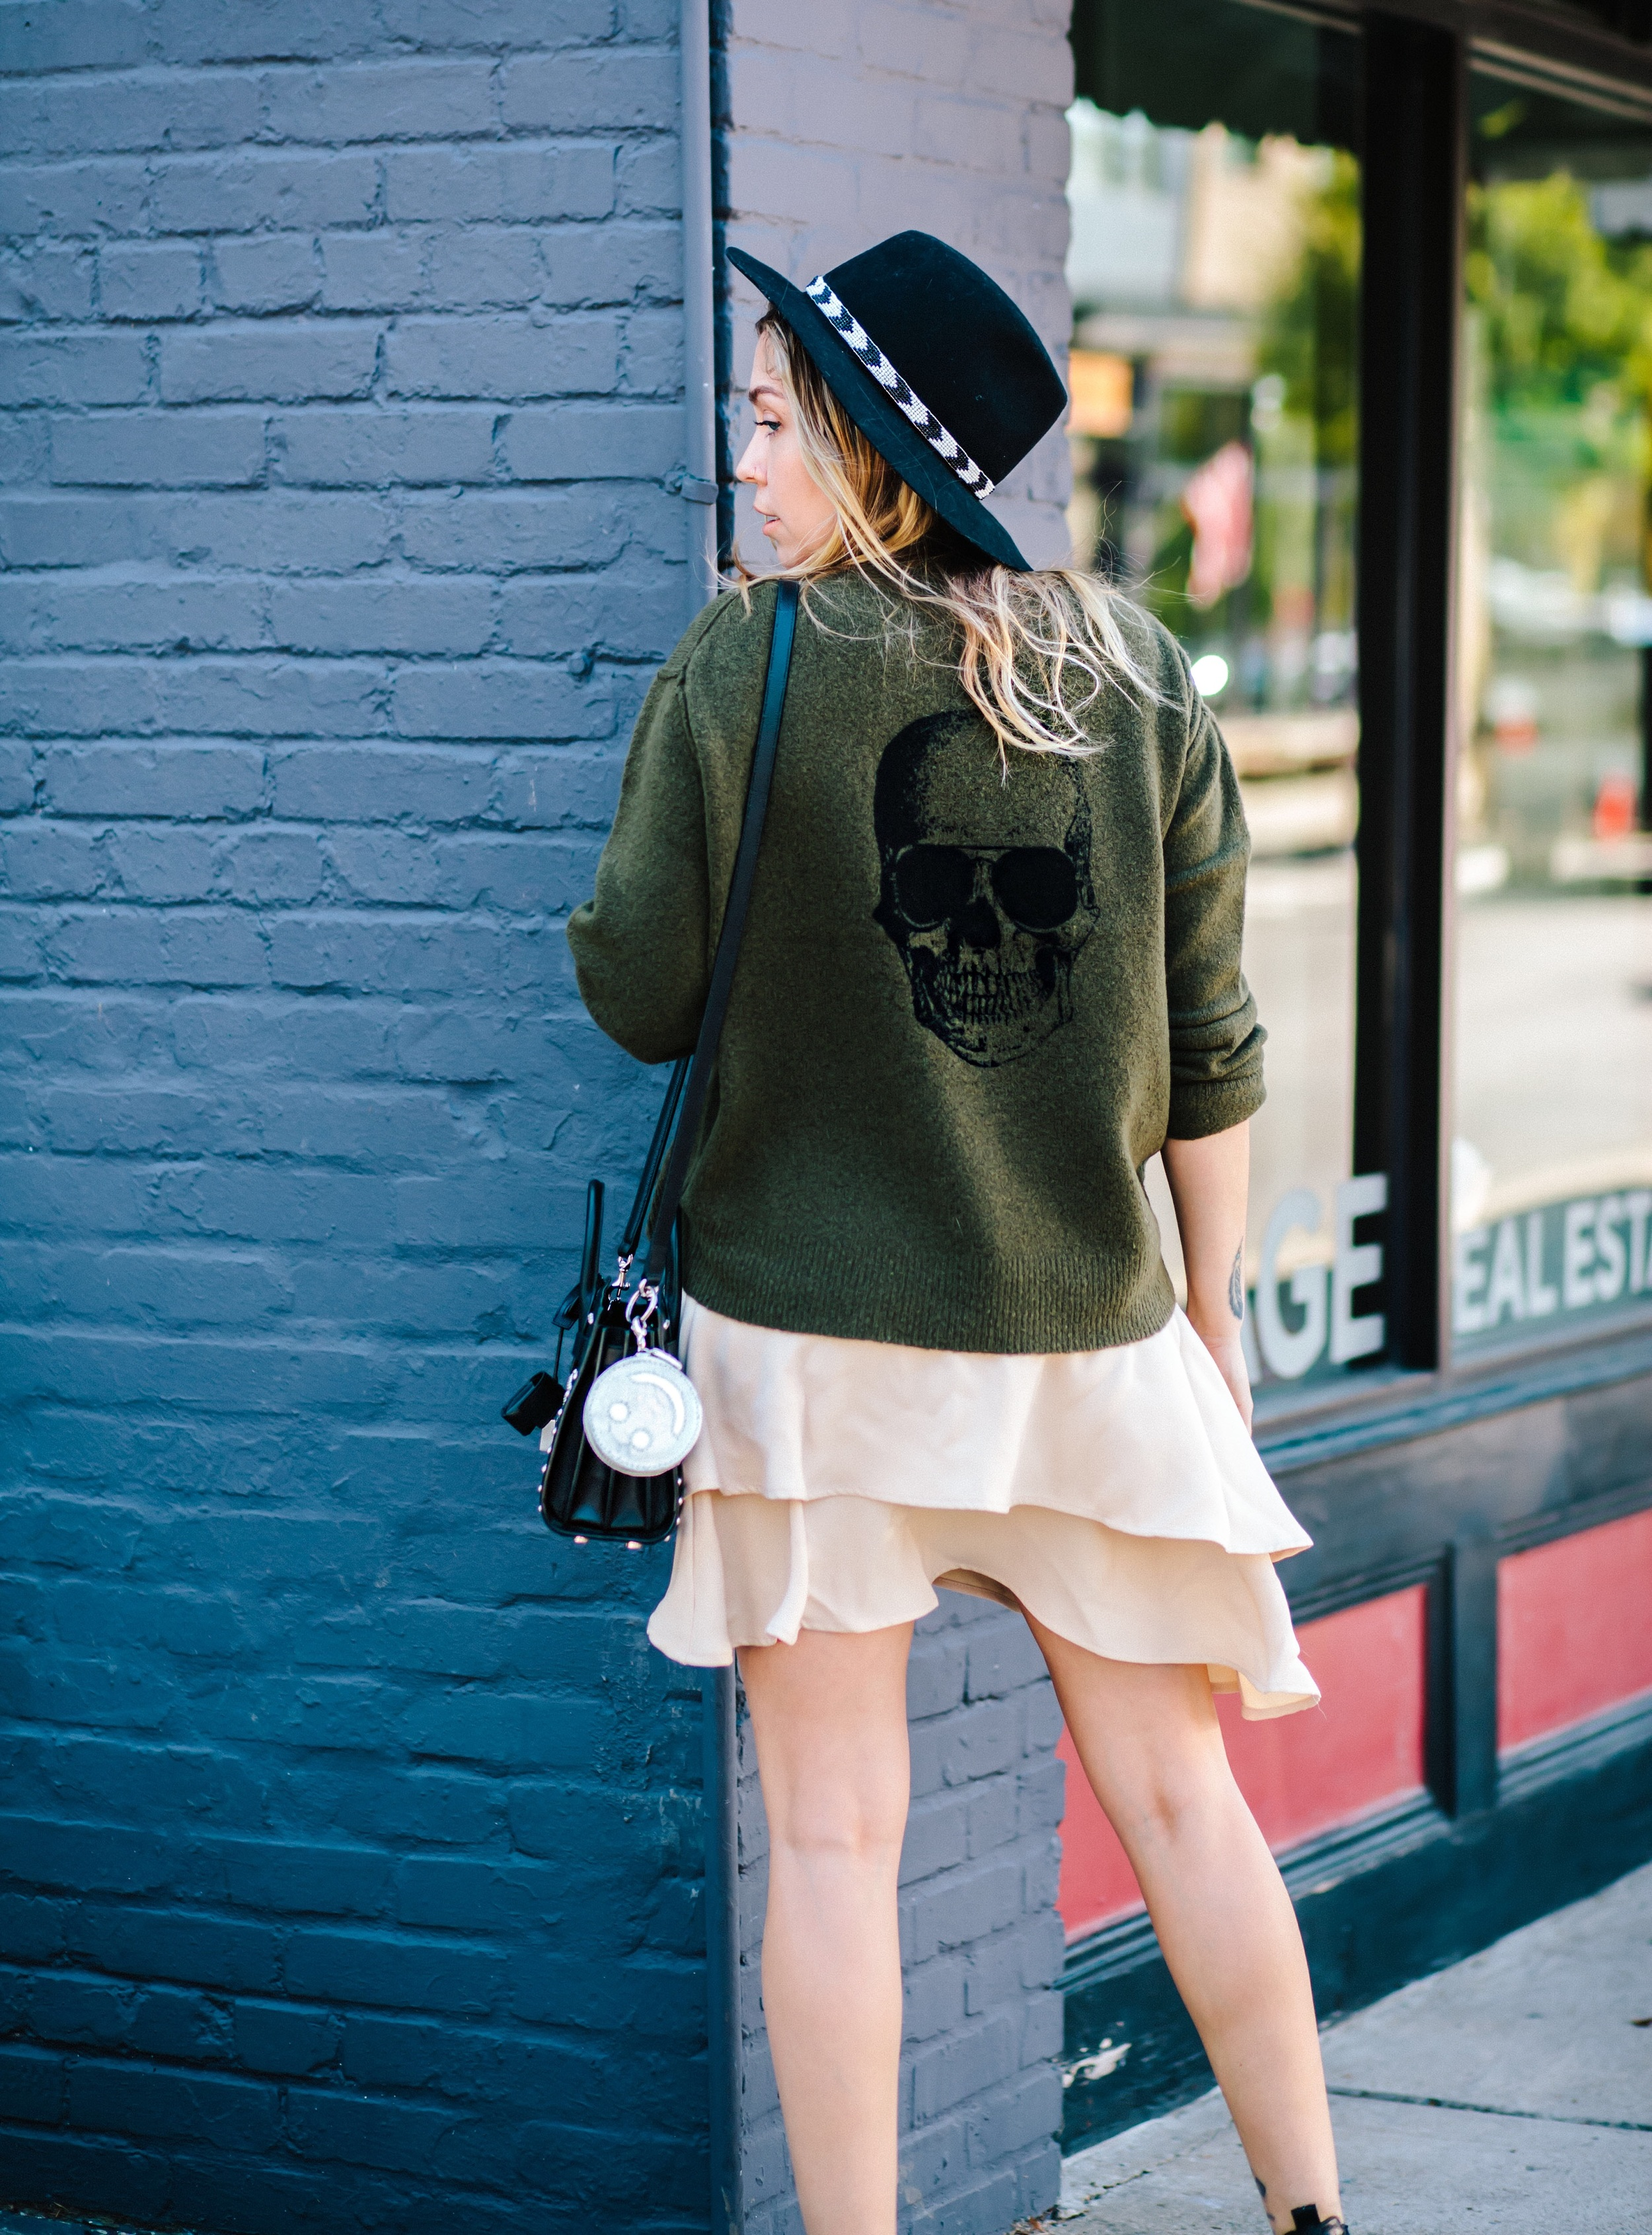 Sweater - Skull Cashmere | Skirt - C/Meo Collective | Boots - Modern Vice | Hat - Lovely Bird | Bag - Saint Laurent   photos by Mandy Mooring